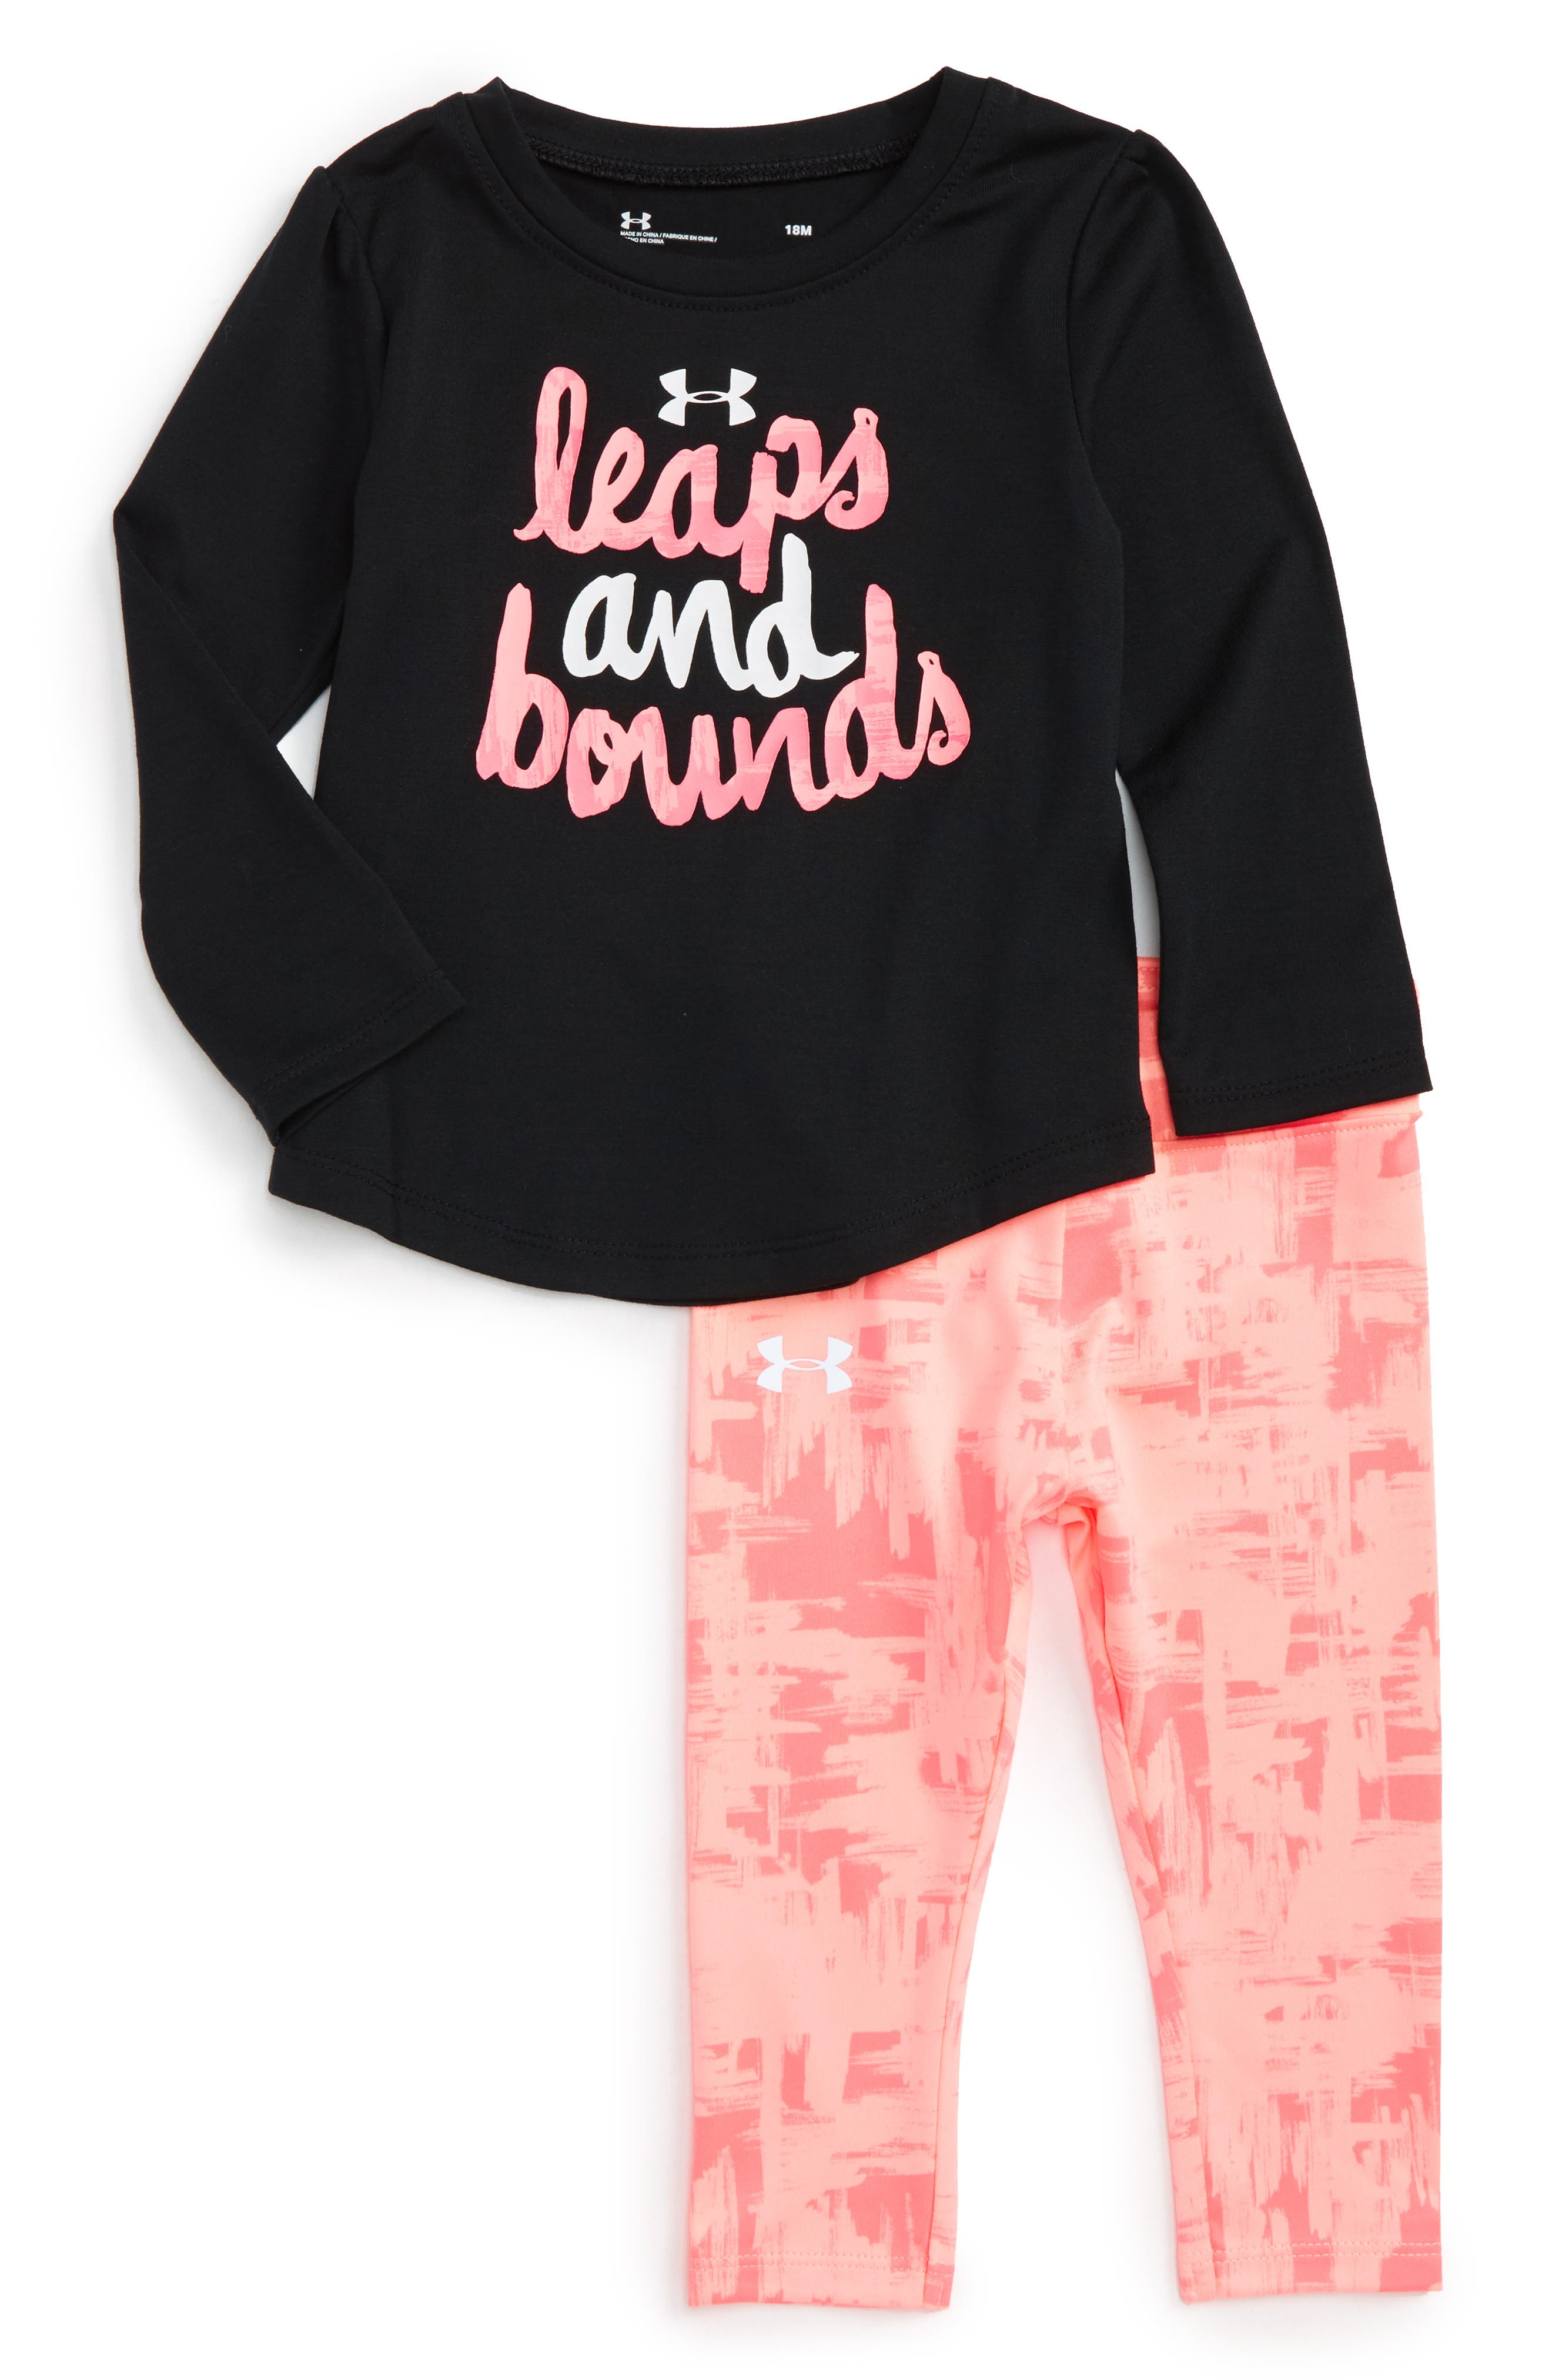 Under Armour Leaps & Bounds Tee & Pants Set (Baby Girls)